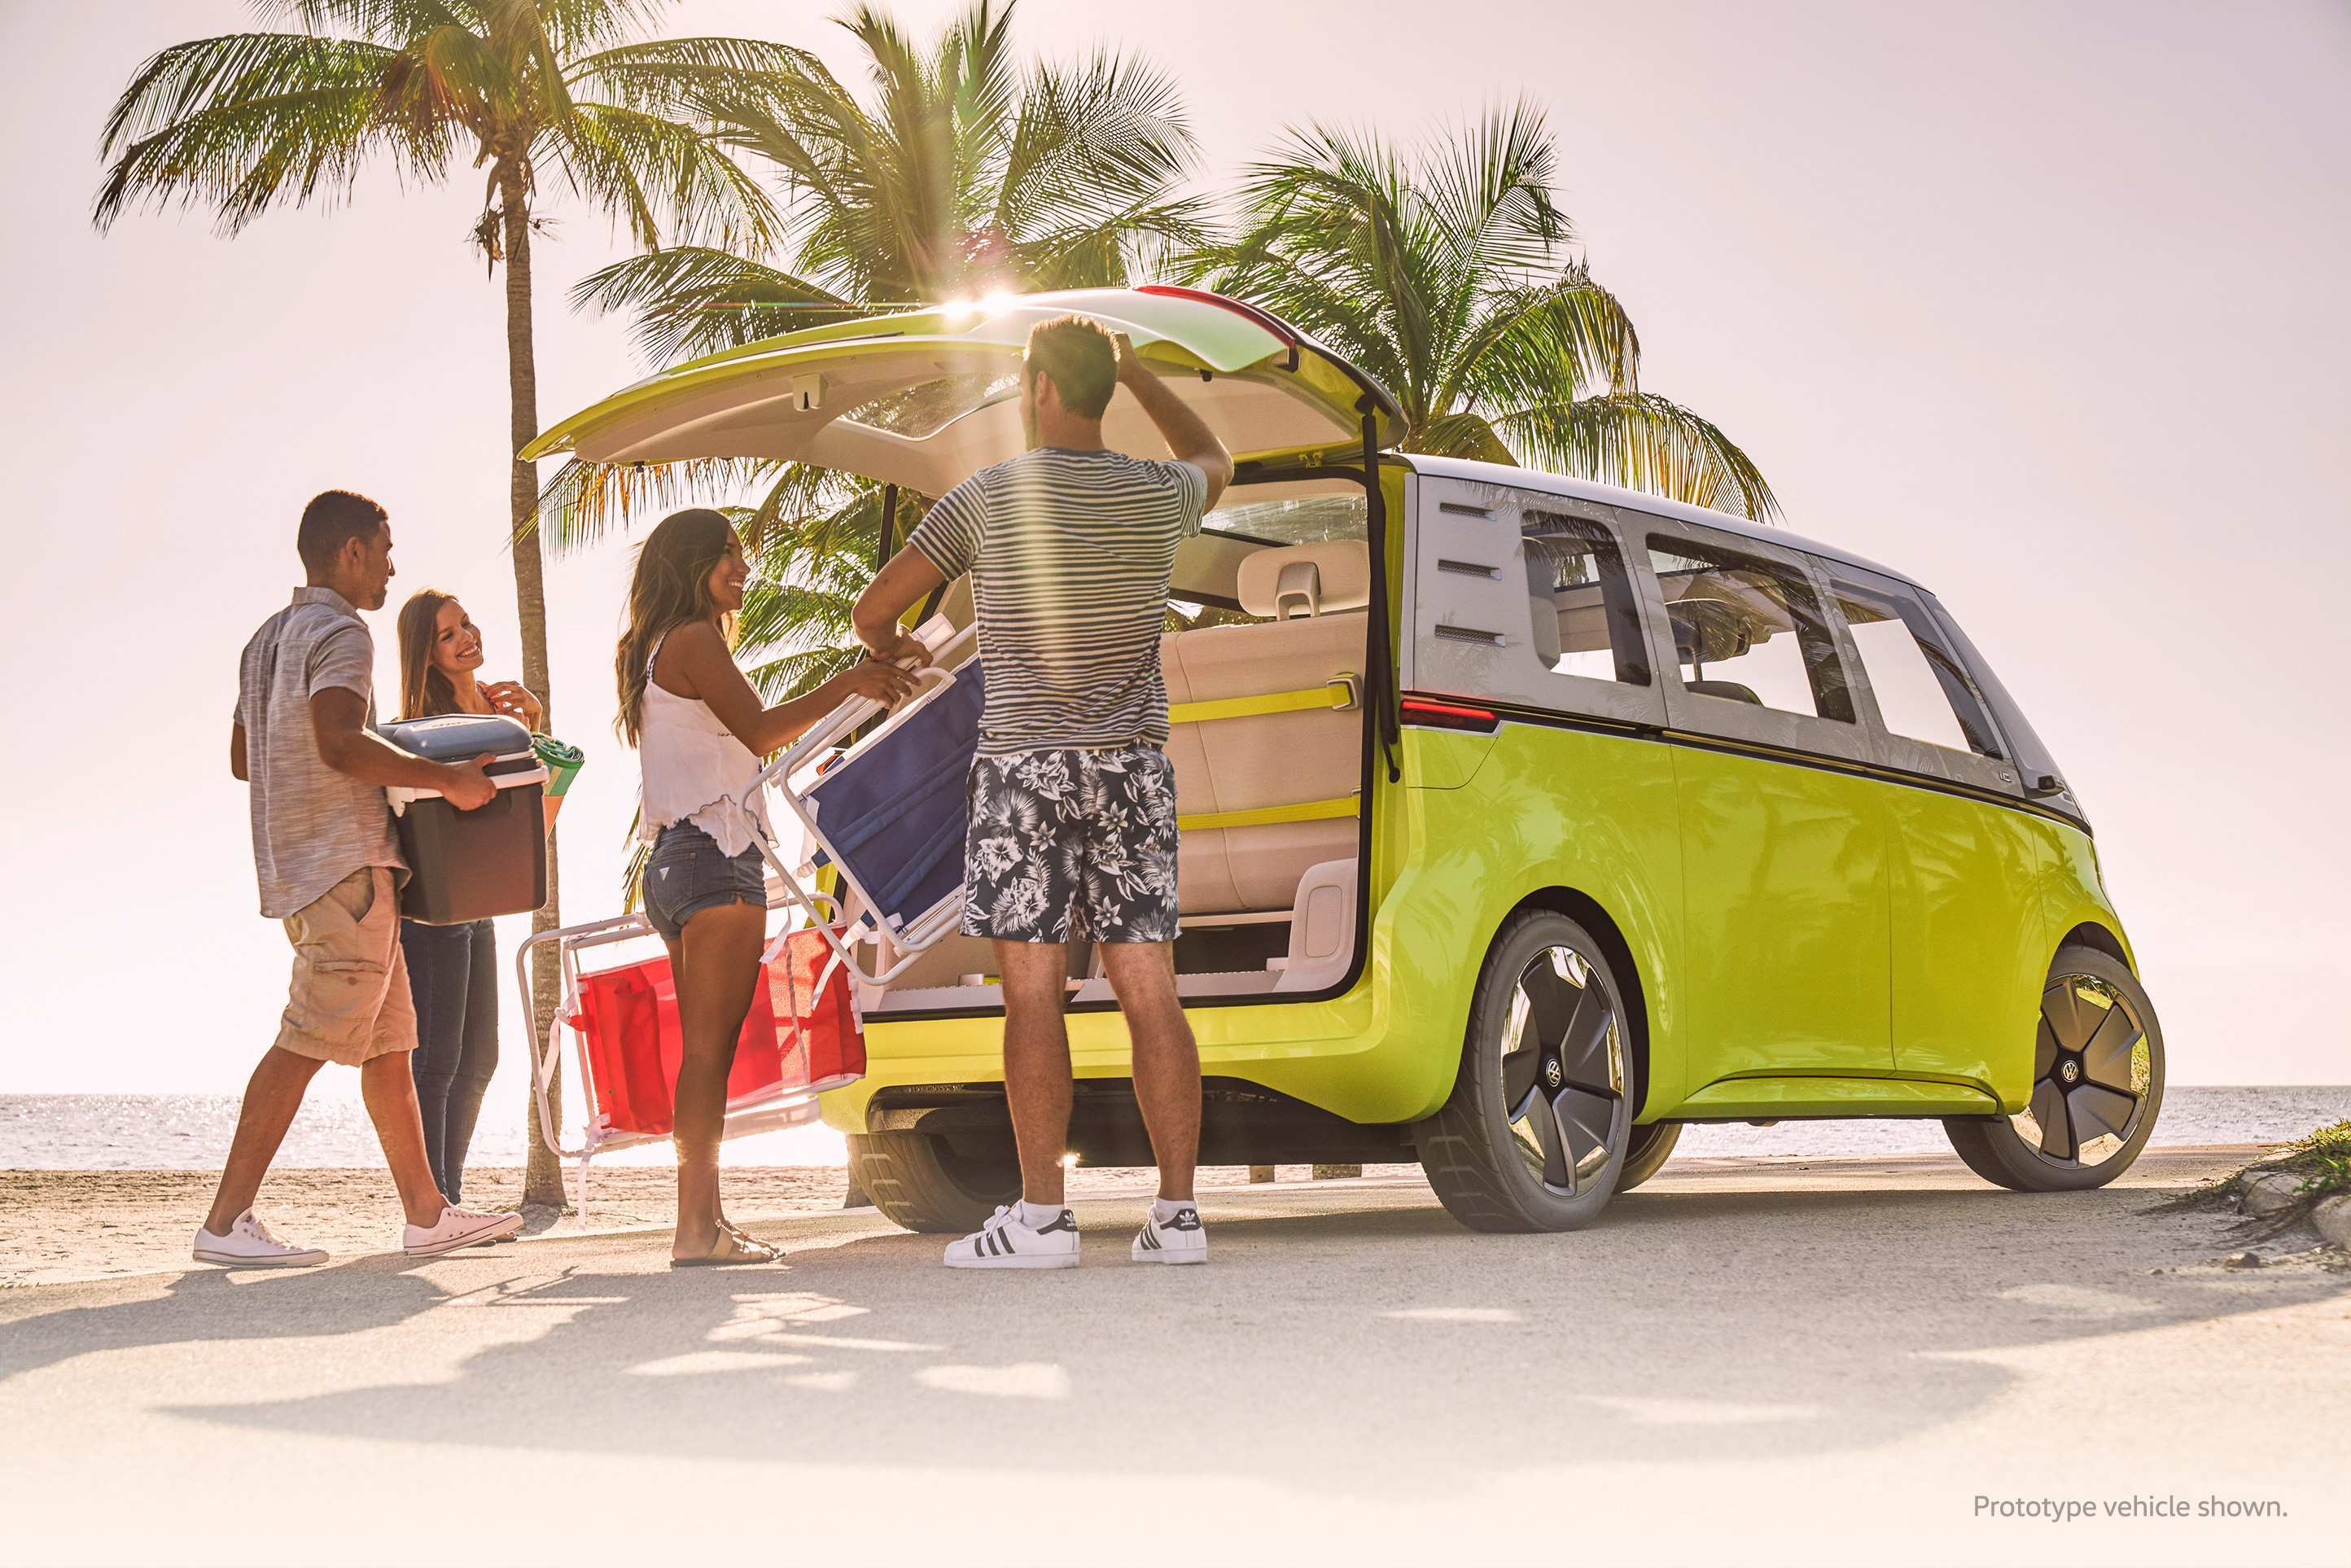 83 Concept of 2020 Vw Bus Price Engine for 2020 Vw Bus Price